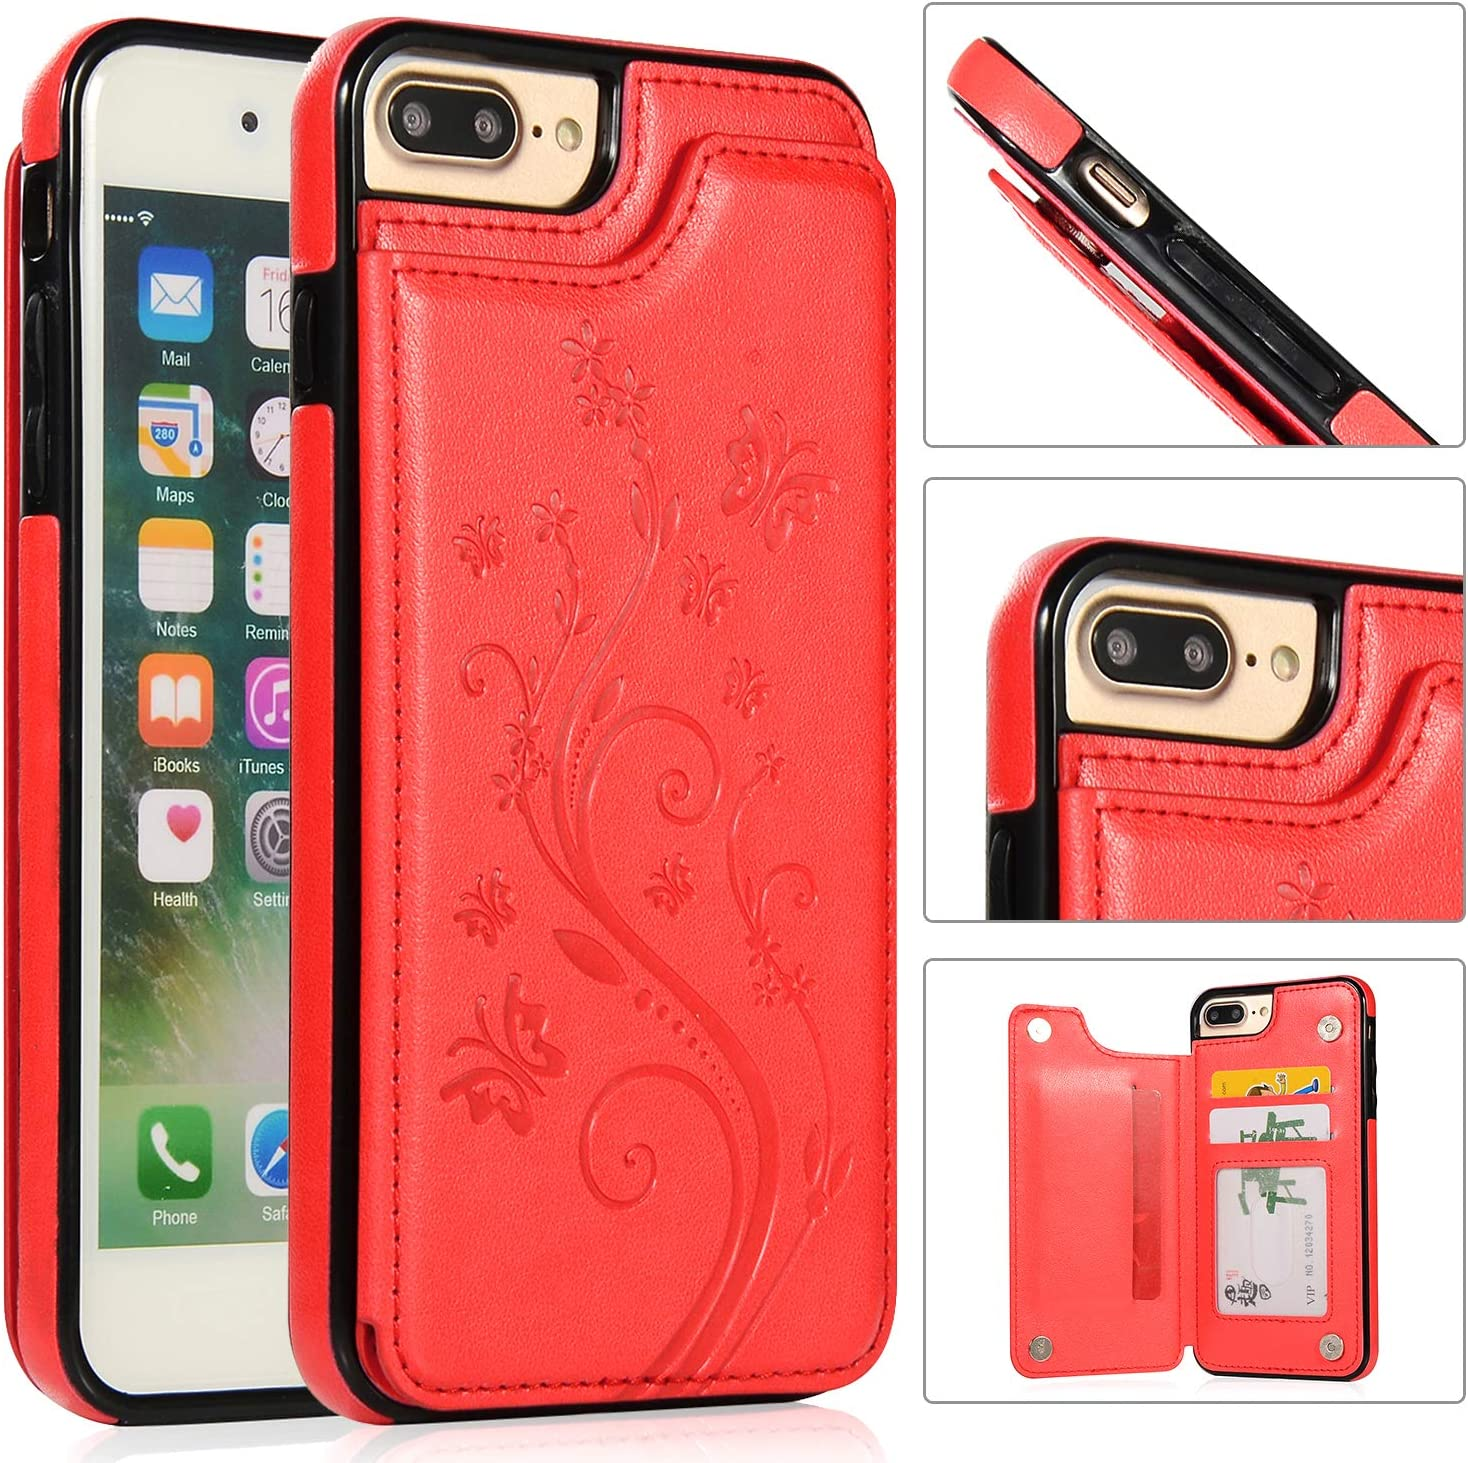 National products Back Quality inspection Wallet Case for iPhone 7 8 QFFUN Stand Elega Plus with